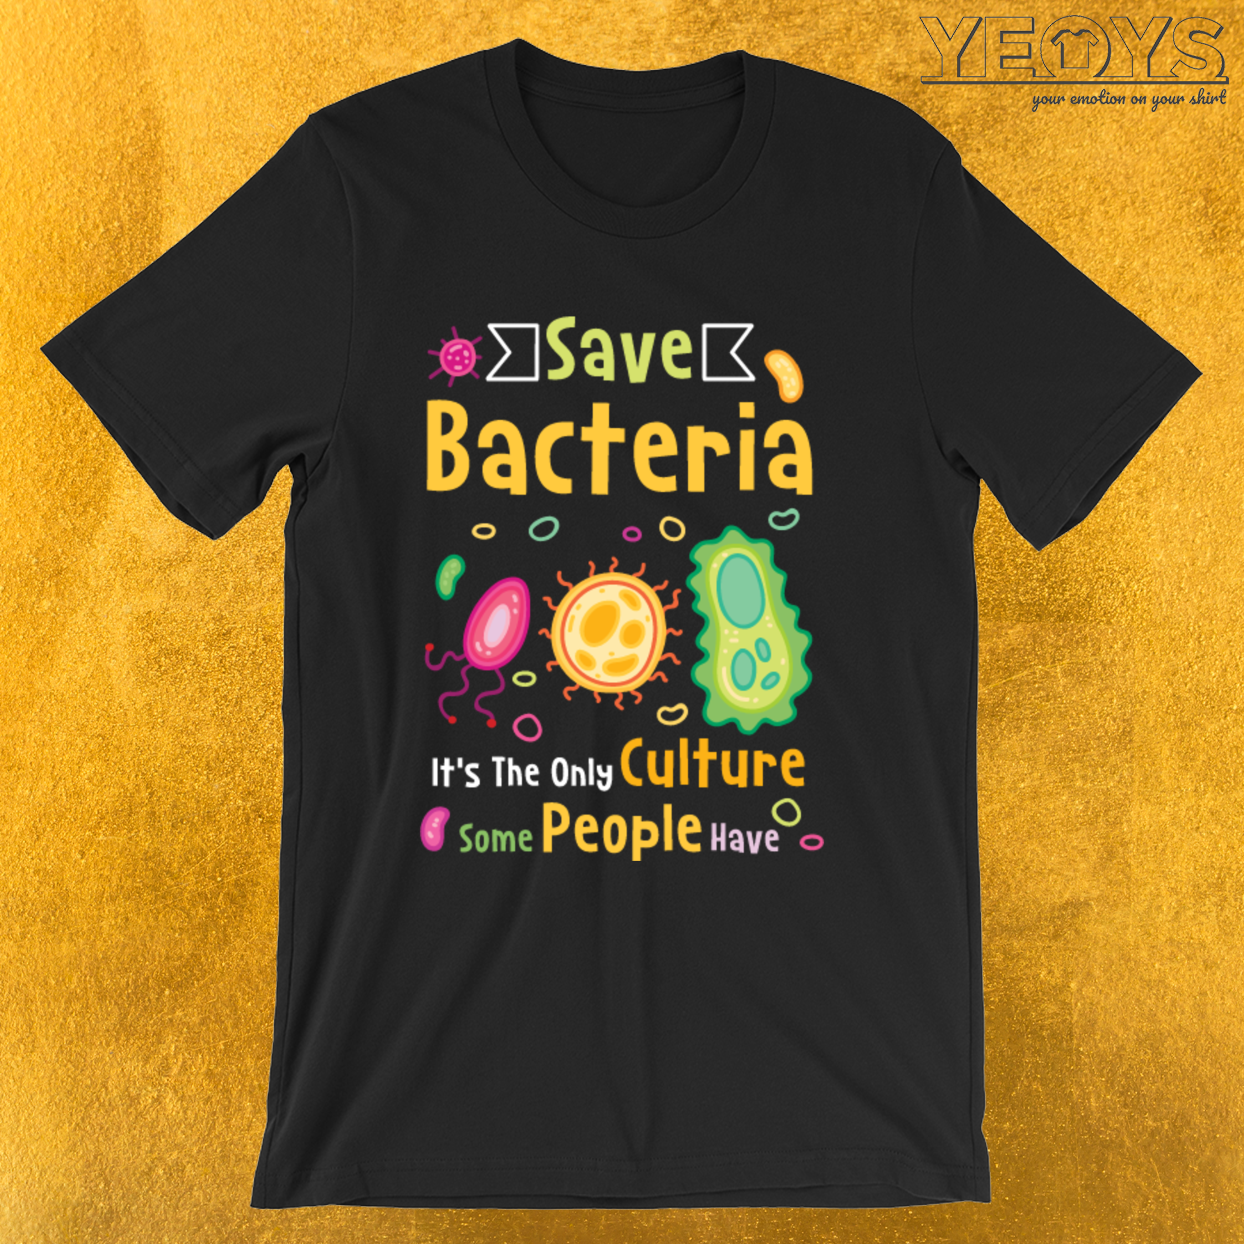 Save Bacteria The Only Culture People Have – Microbiology Tee